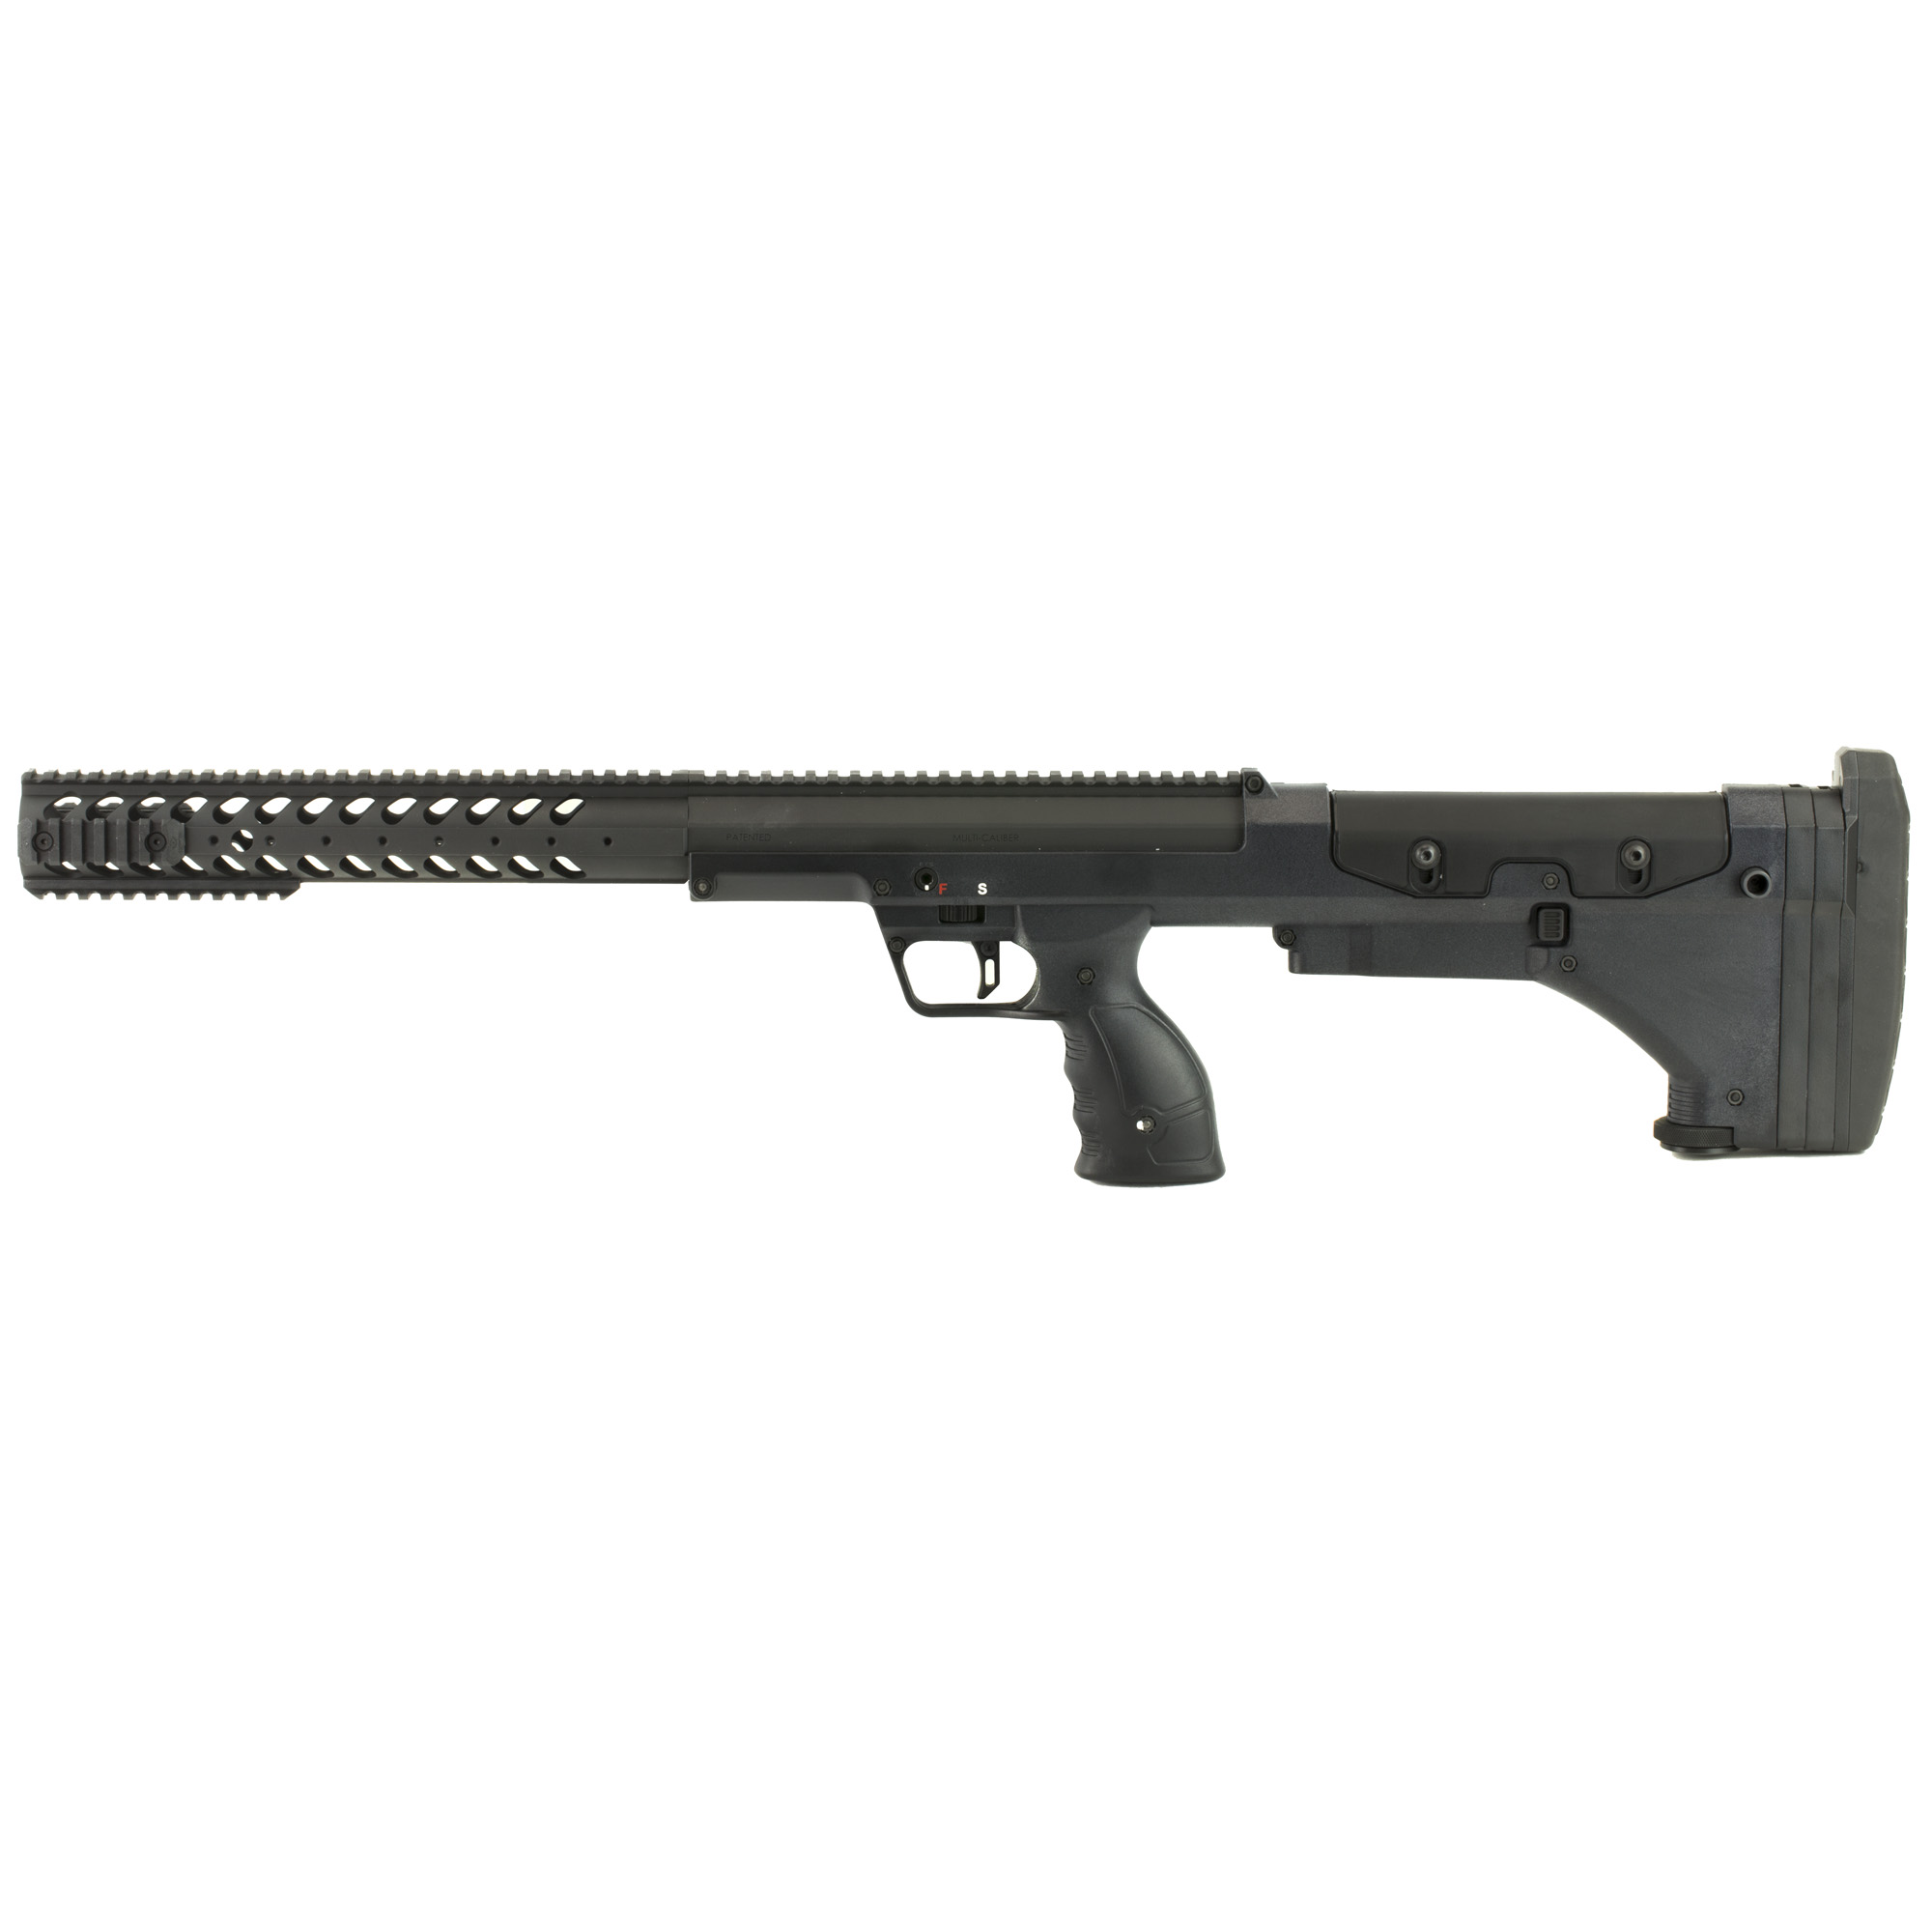 """The SRS-A1 maintains 1/2 MOA accuracy or better because it incorporates match grade (free-floated) barrels"""" chambers and crowns"""" a fully-adjustable match trigger"""" and a solid return-to-zero barrel mounting system. With the ability to quickly change calibers"""" operators can change the rifle length"""" penetration"""" and distance capabilities based on mission requirements."""